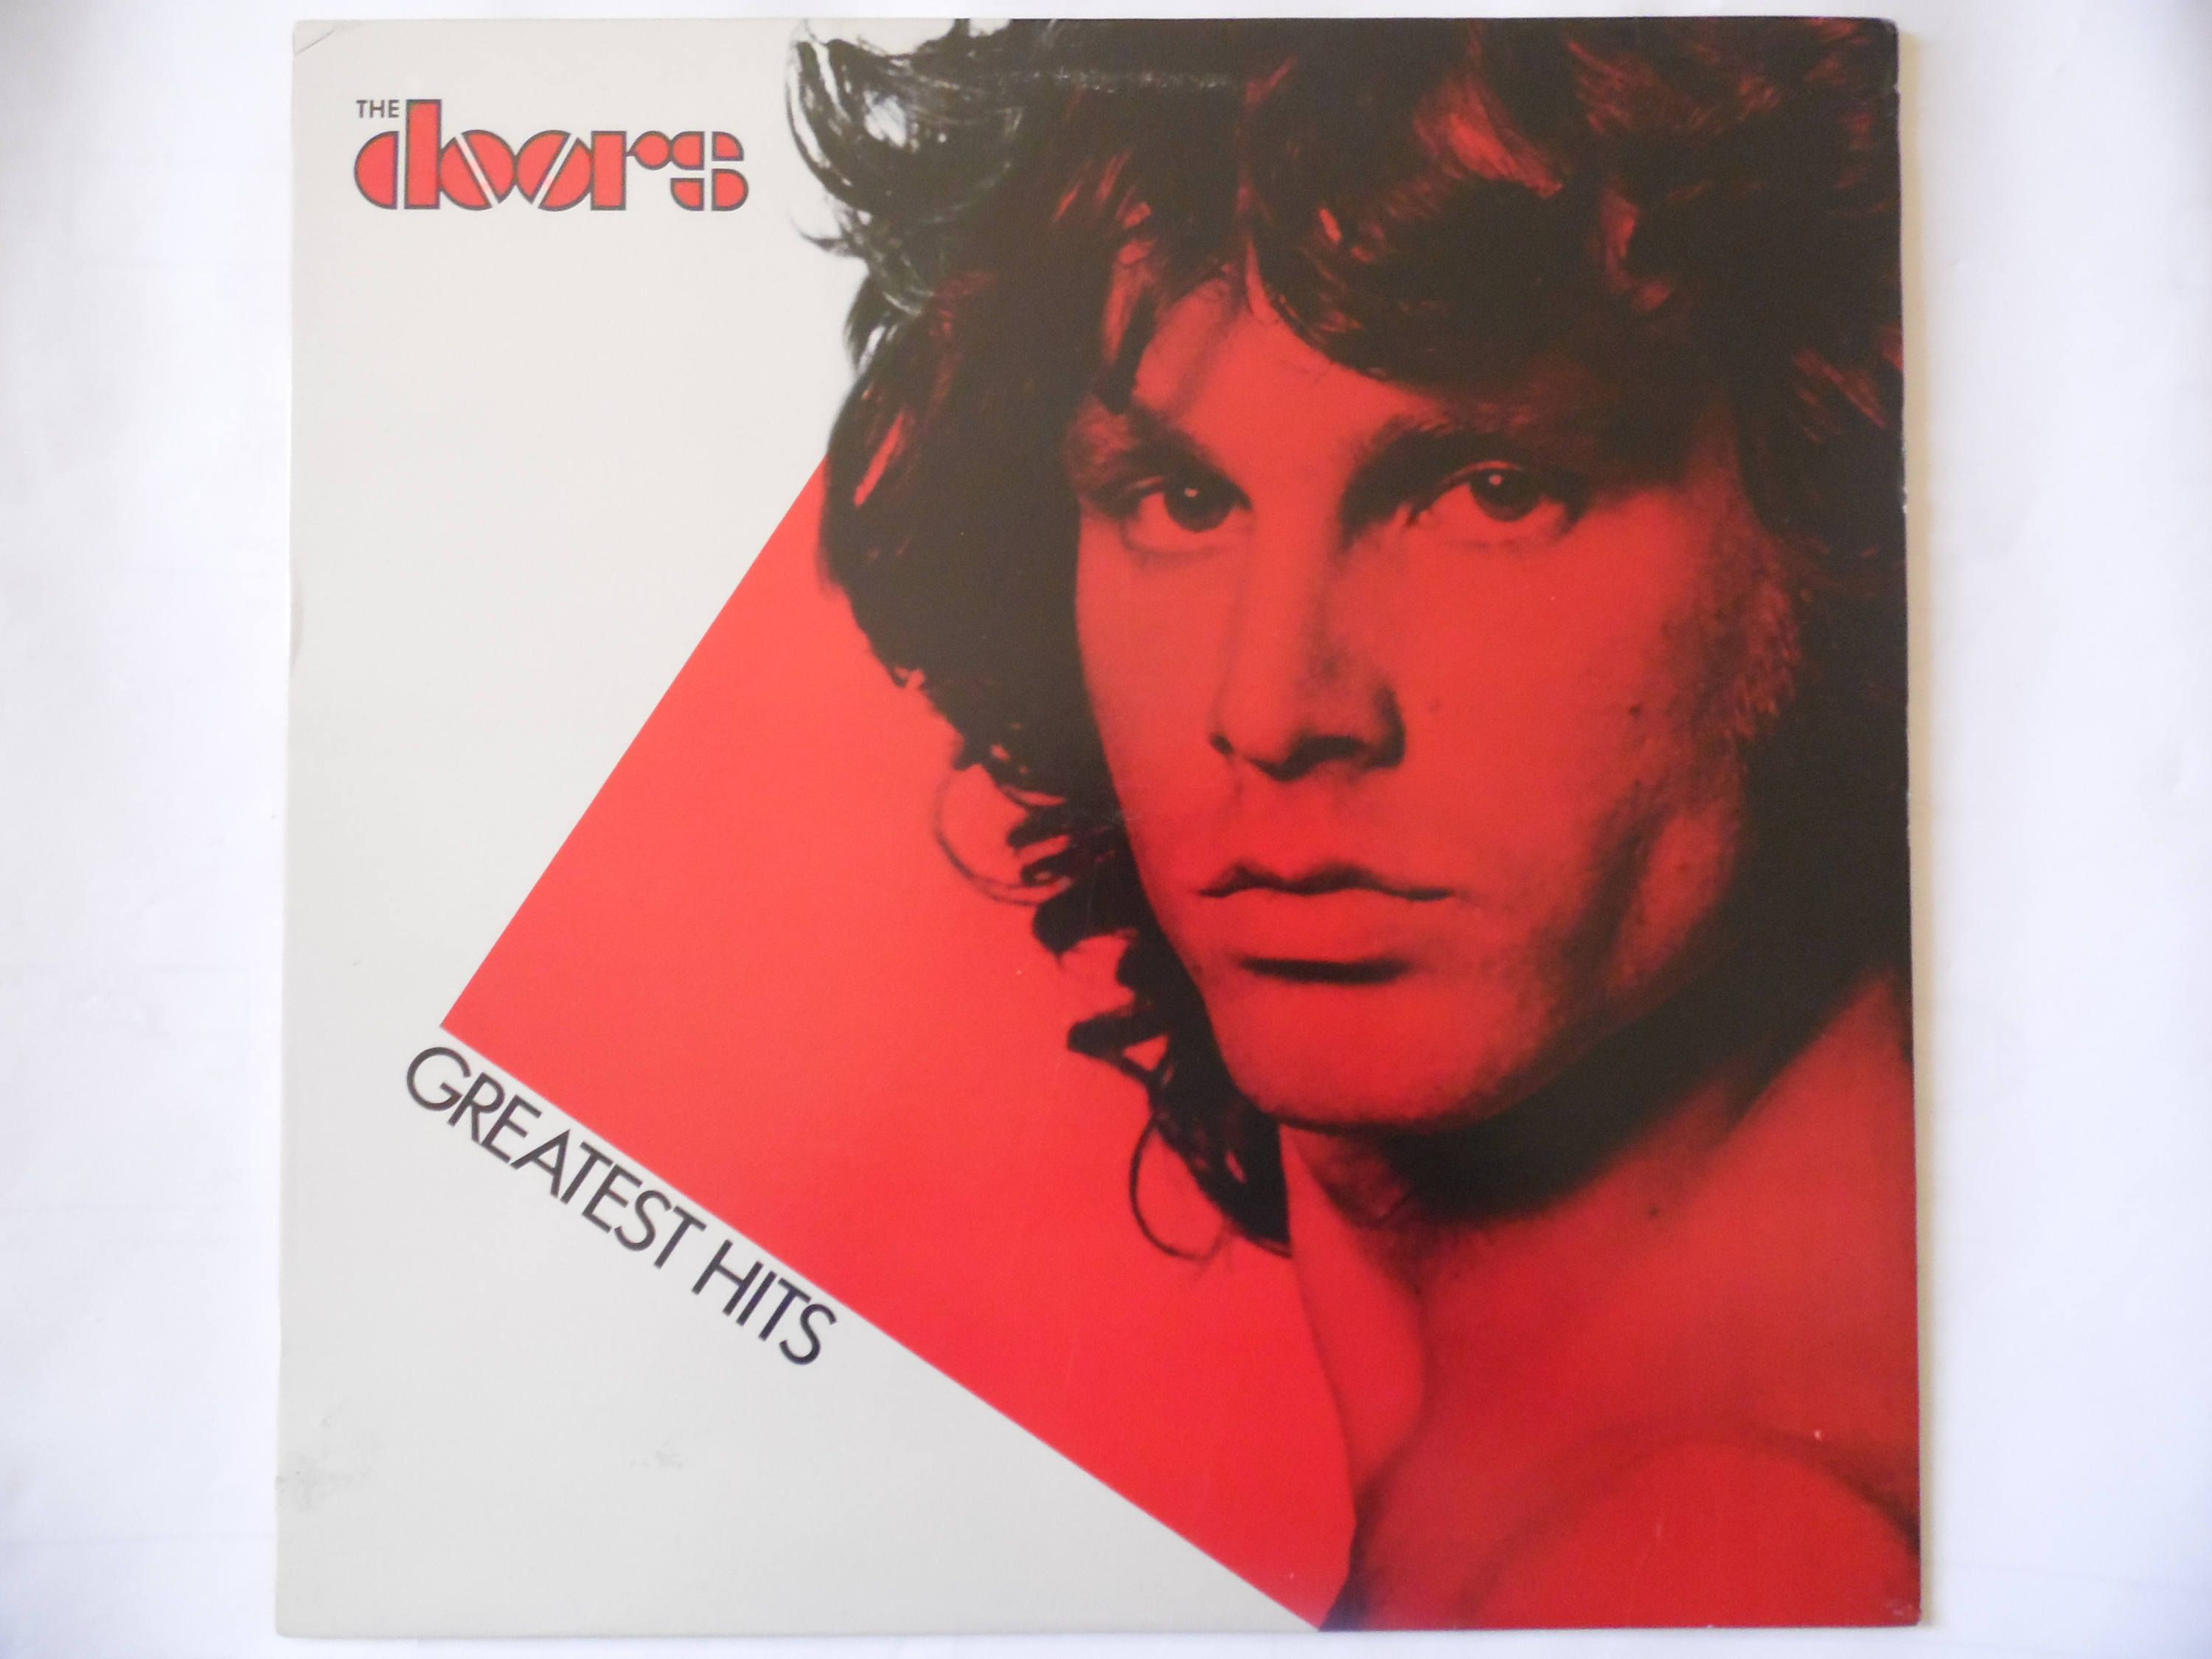 The Doors, Greatest Hits vinyl record with picture sleeve and lyrics insert  by theposterposter on